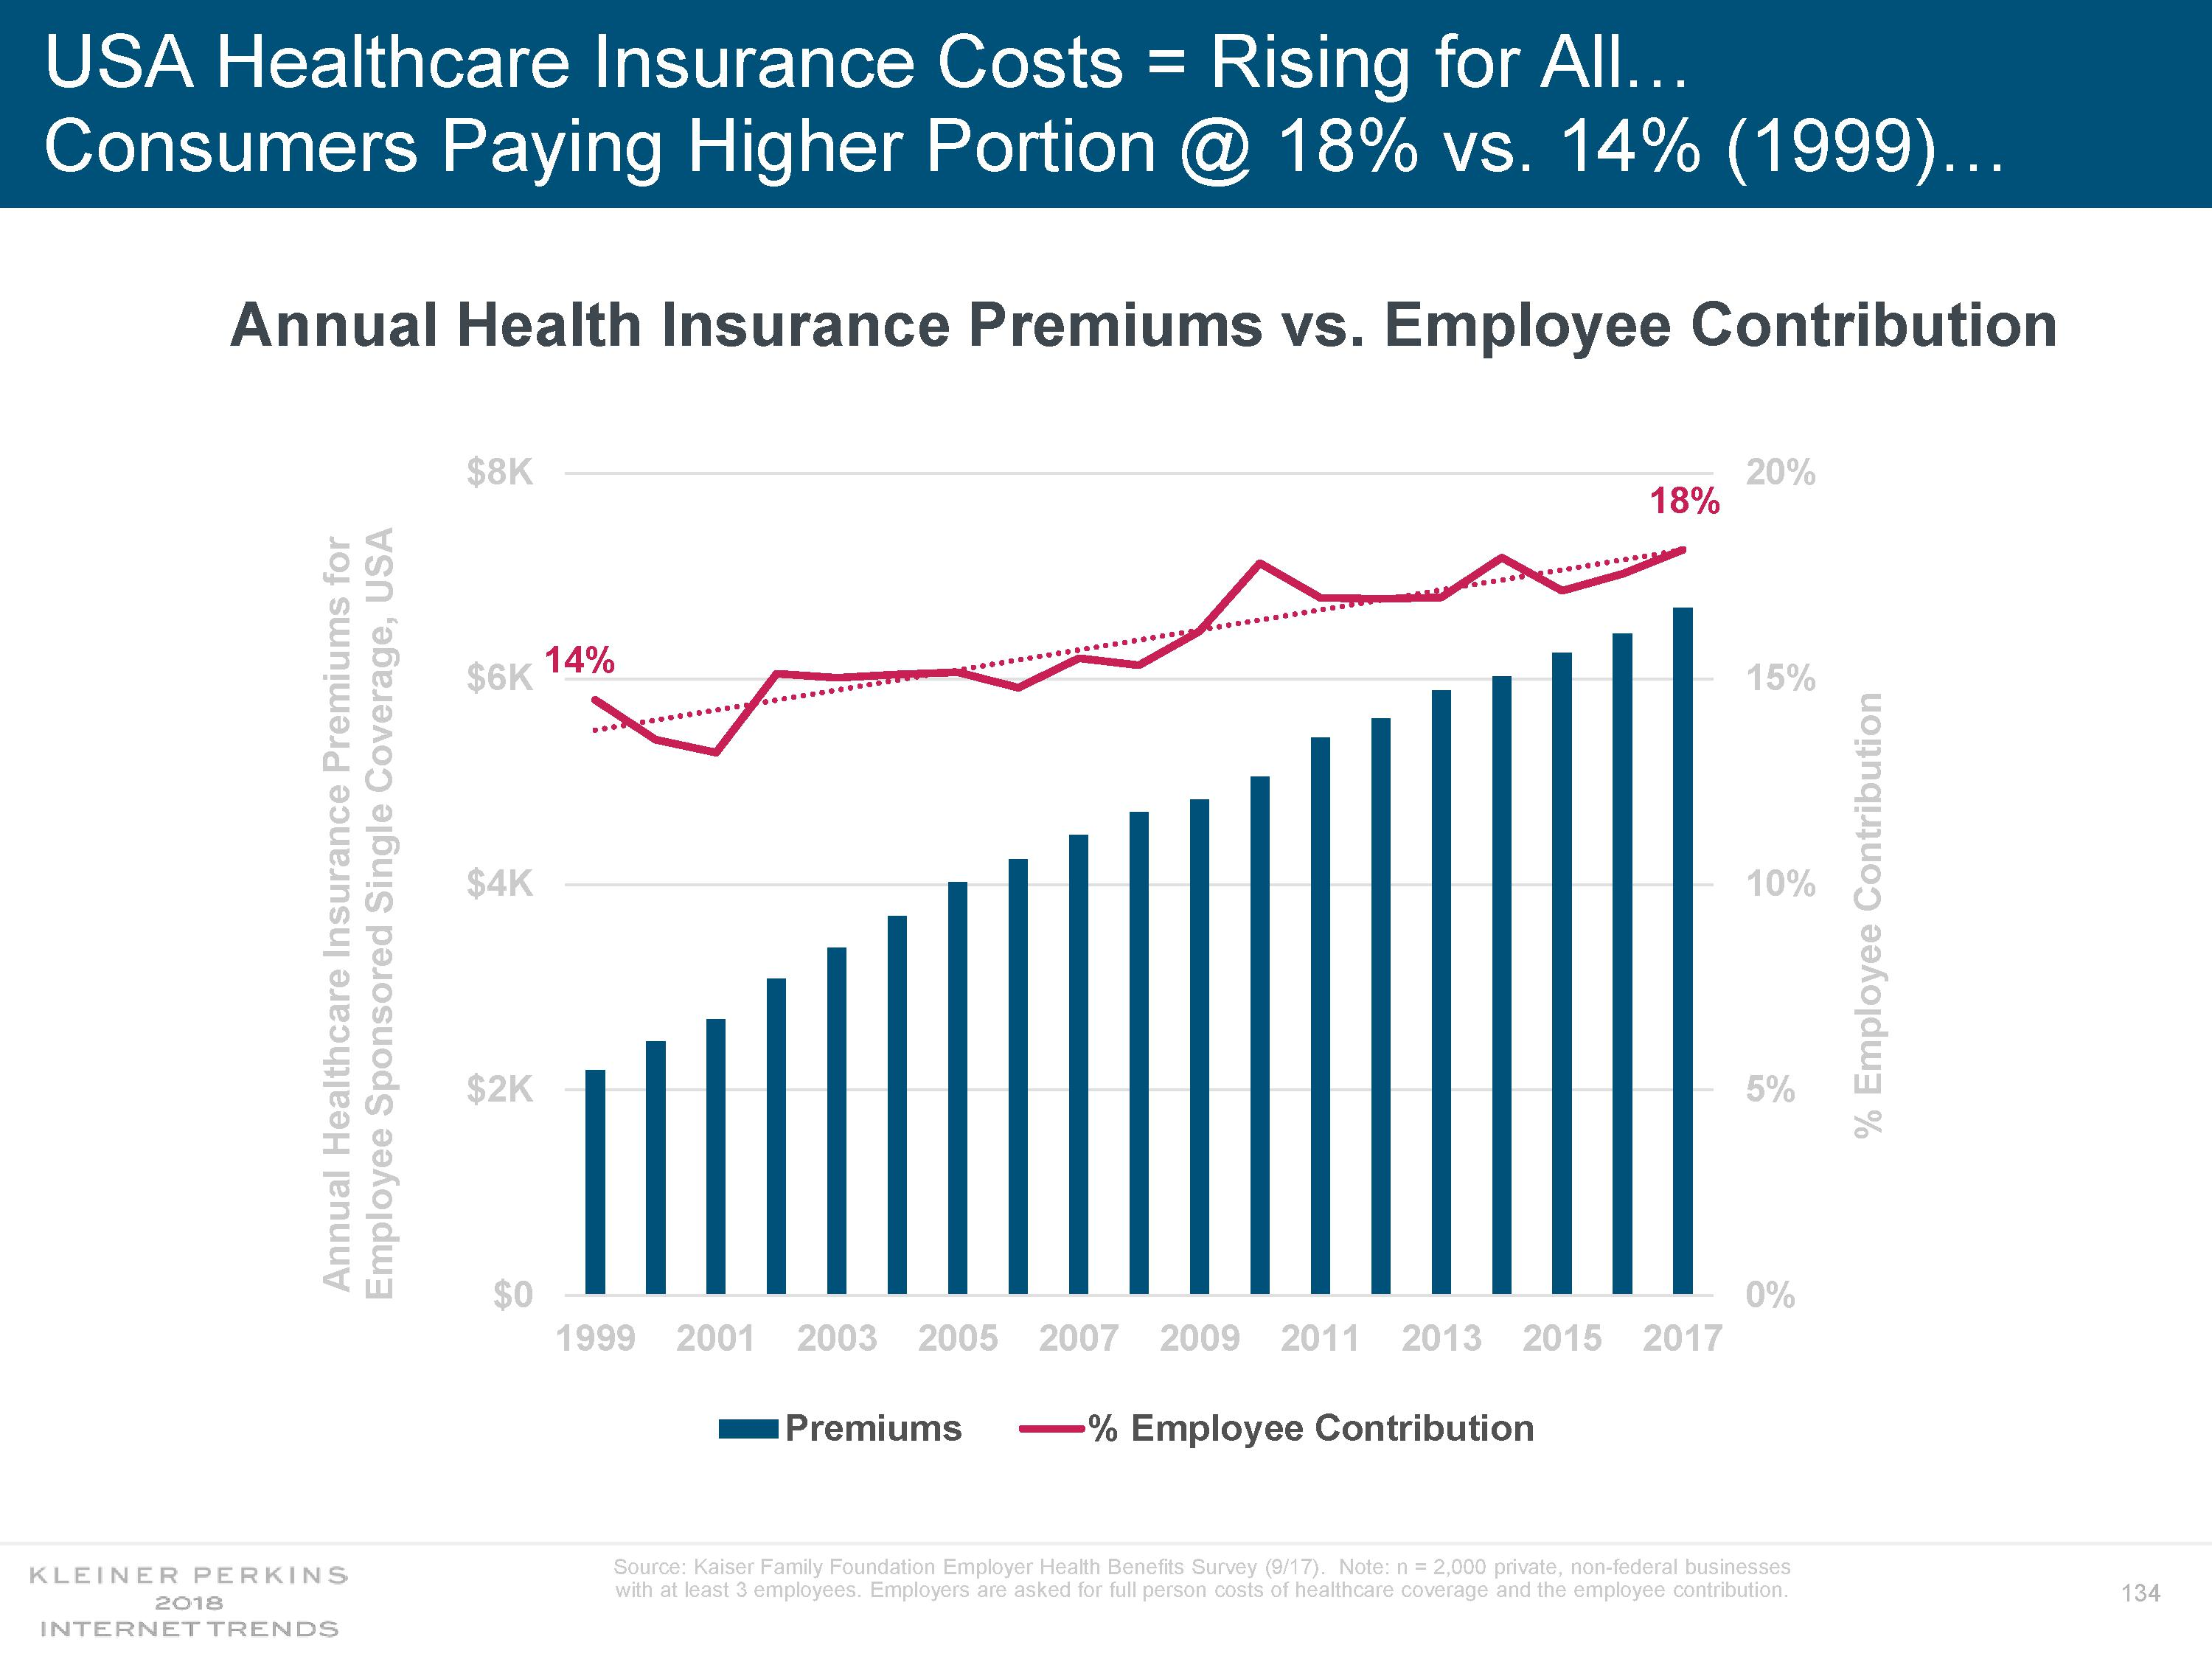 an essay on the rising costs of healthcare in the united states In addition, these rising costs require an extensive evaluation in order to ensure the provision of quality healthcare services the united states of america applies the extensive use of costly diagnostic equipment in carrying in the future, the state still foresees a rise in the cost of healthcare services.